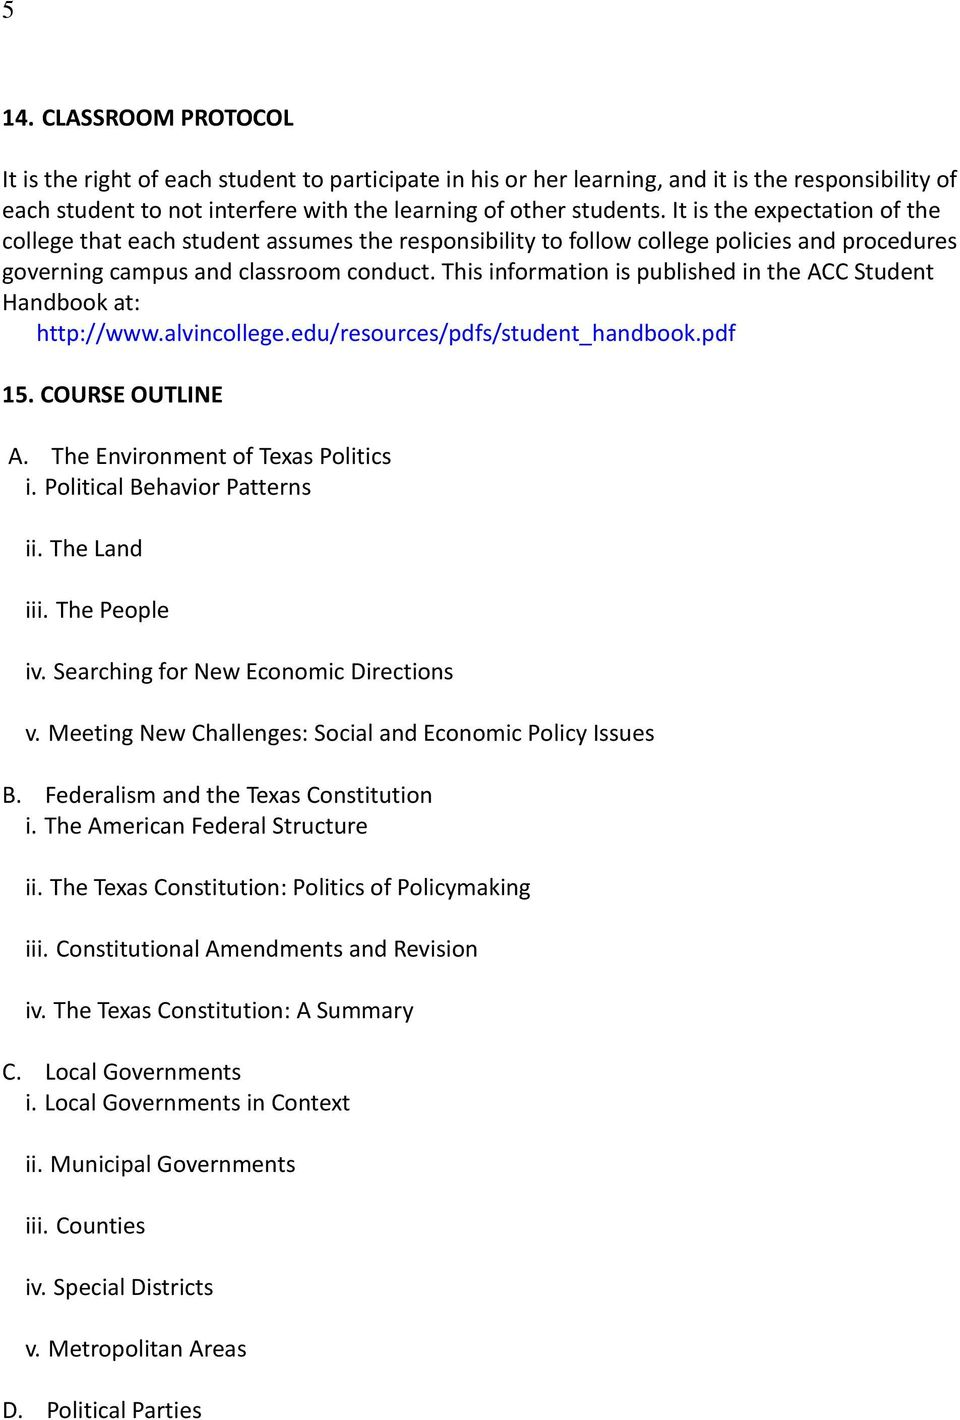 This information is published in the ACC Student Handbook at: http://www.alvincollege.edu/resources/pdfs/student_handbook.pdf 15. COURSE OUTLINE A. The Environment of Texas Politics i.